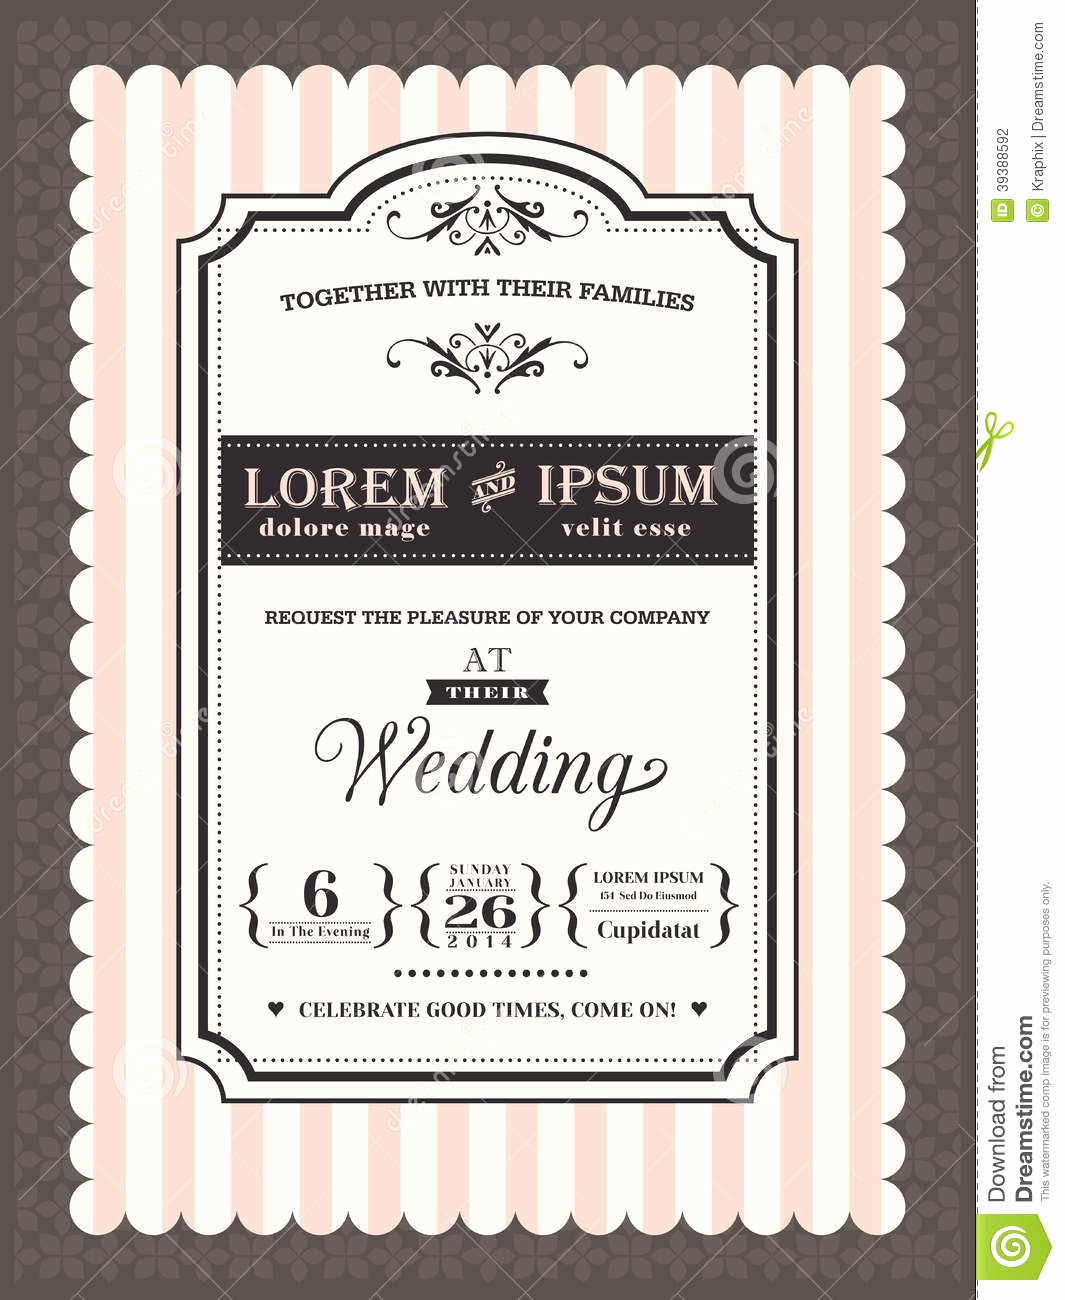 Wedding Invitation Frame Ideas Unique Vintage Wedding Invitation Border and Frame Stock Vector